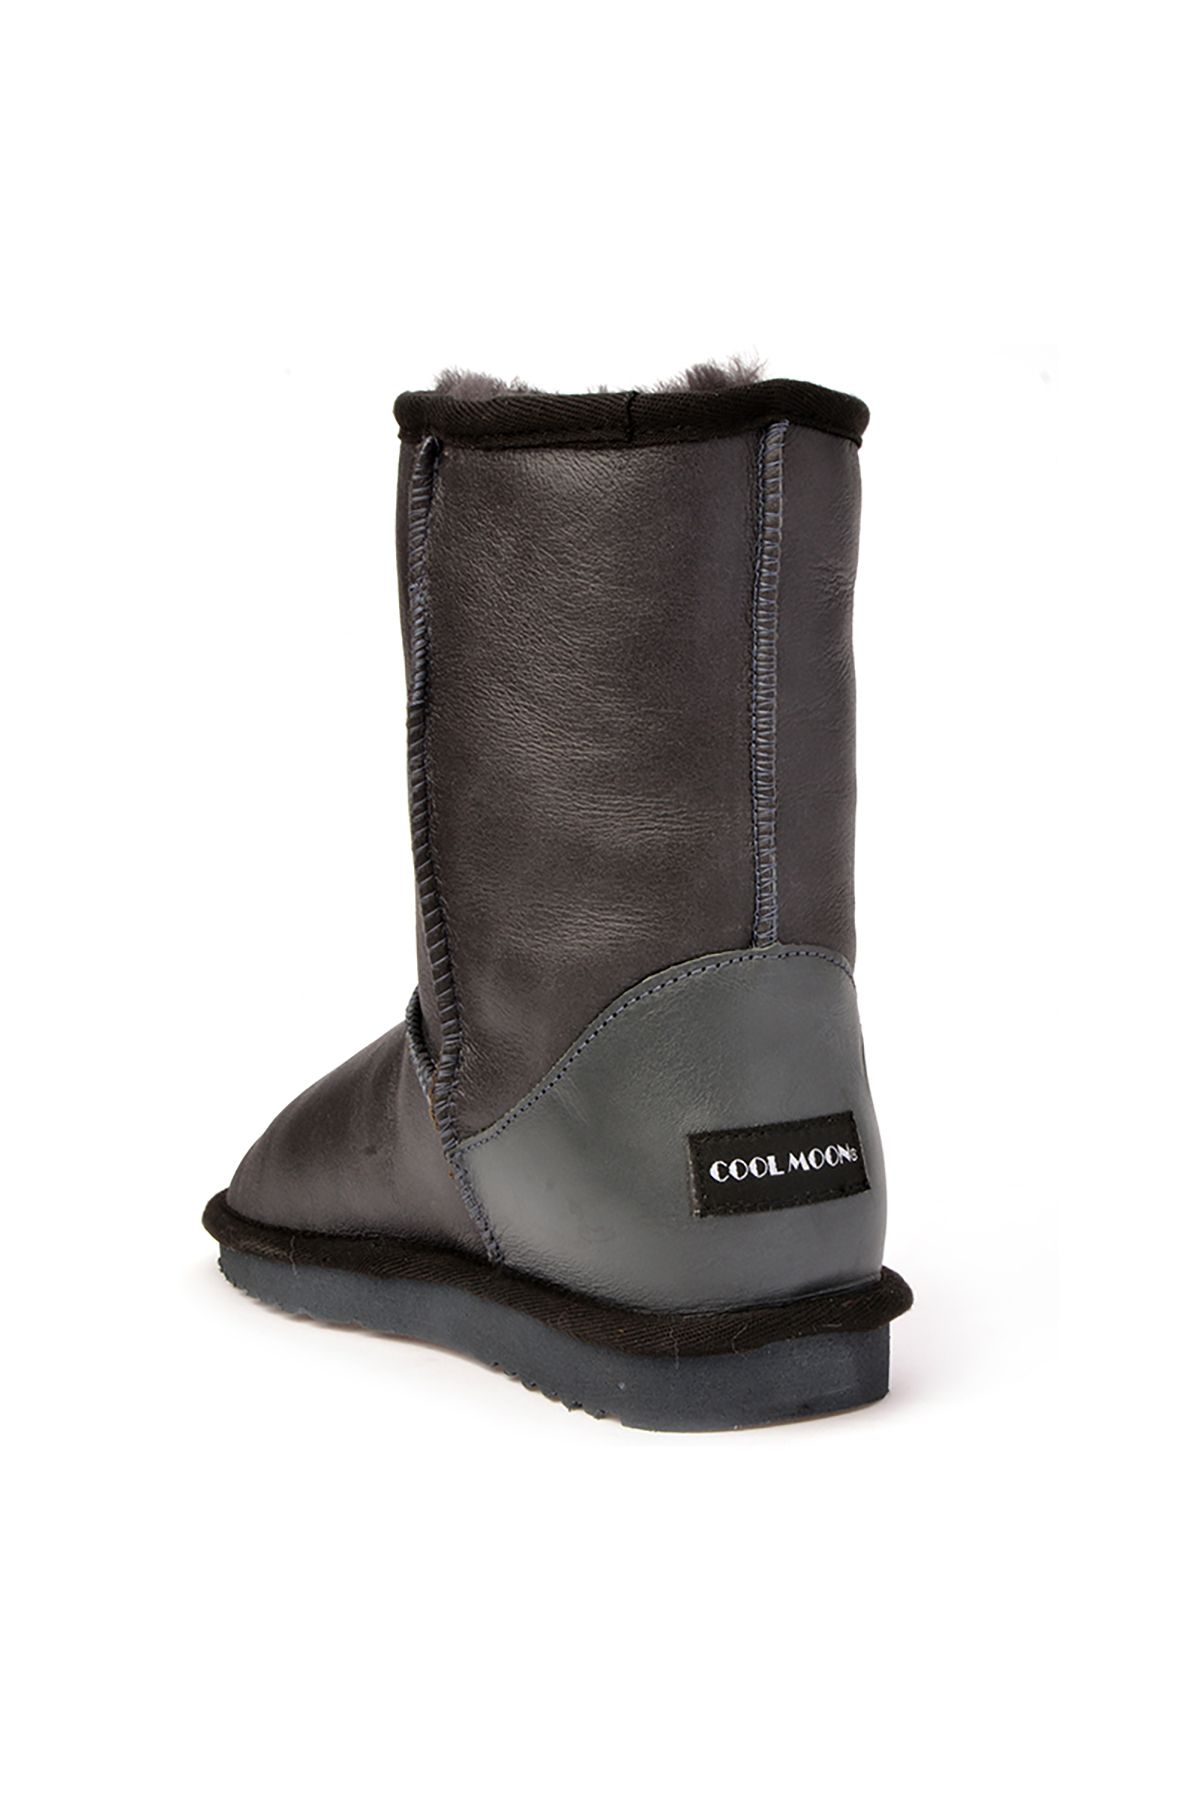 Cool Moon Classic Women Uggs From Genuine Leather Gray